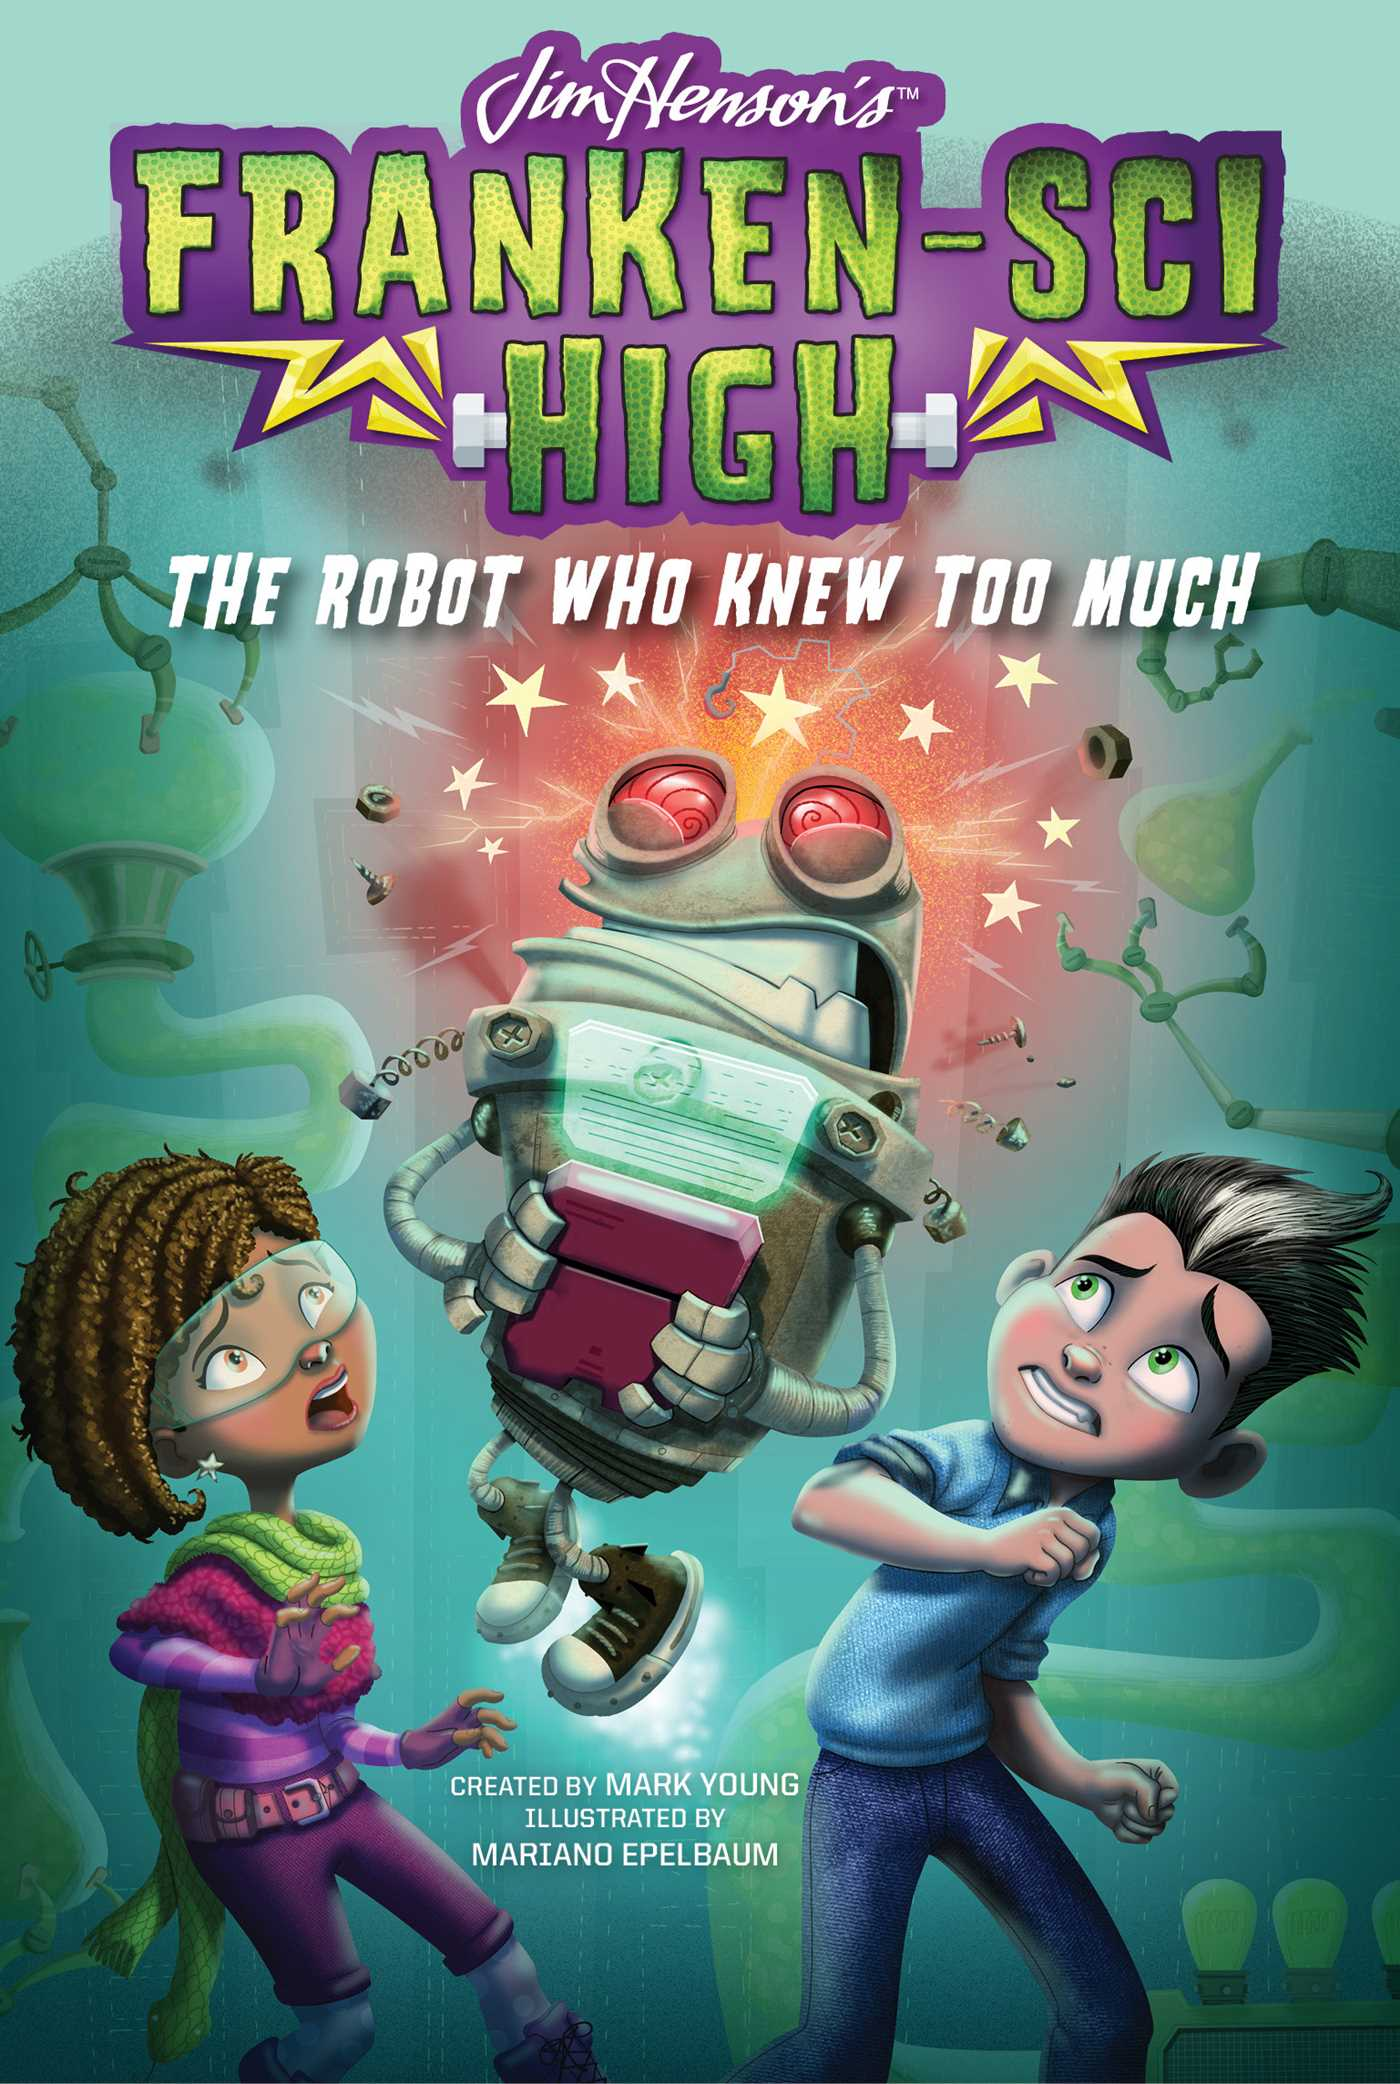 The Robot Who Knew Too Much [electronic resource]